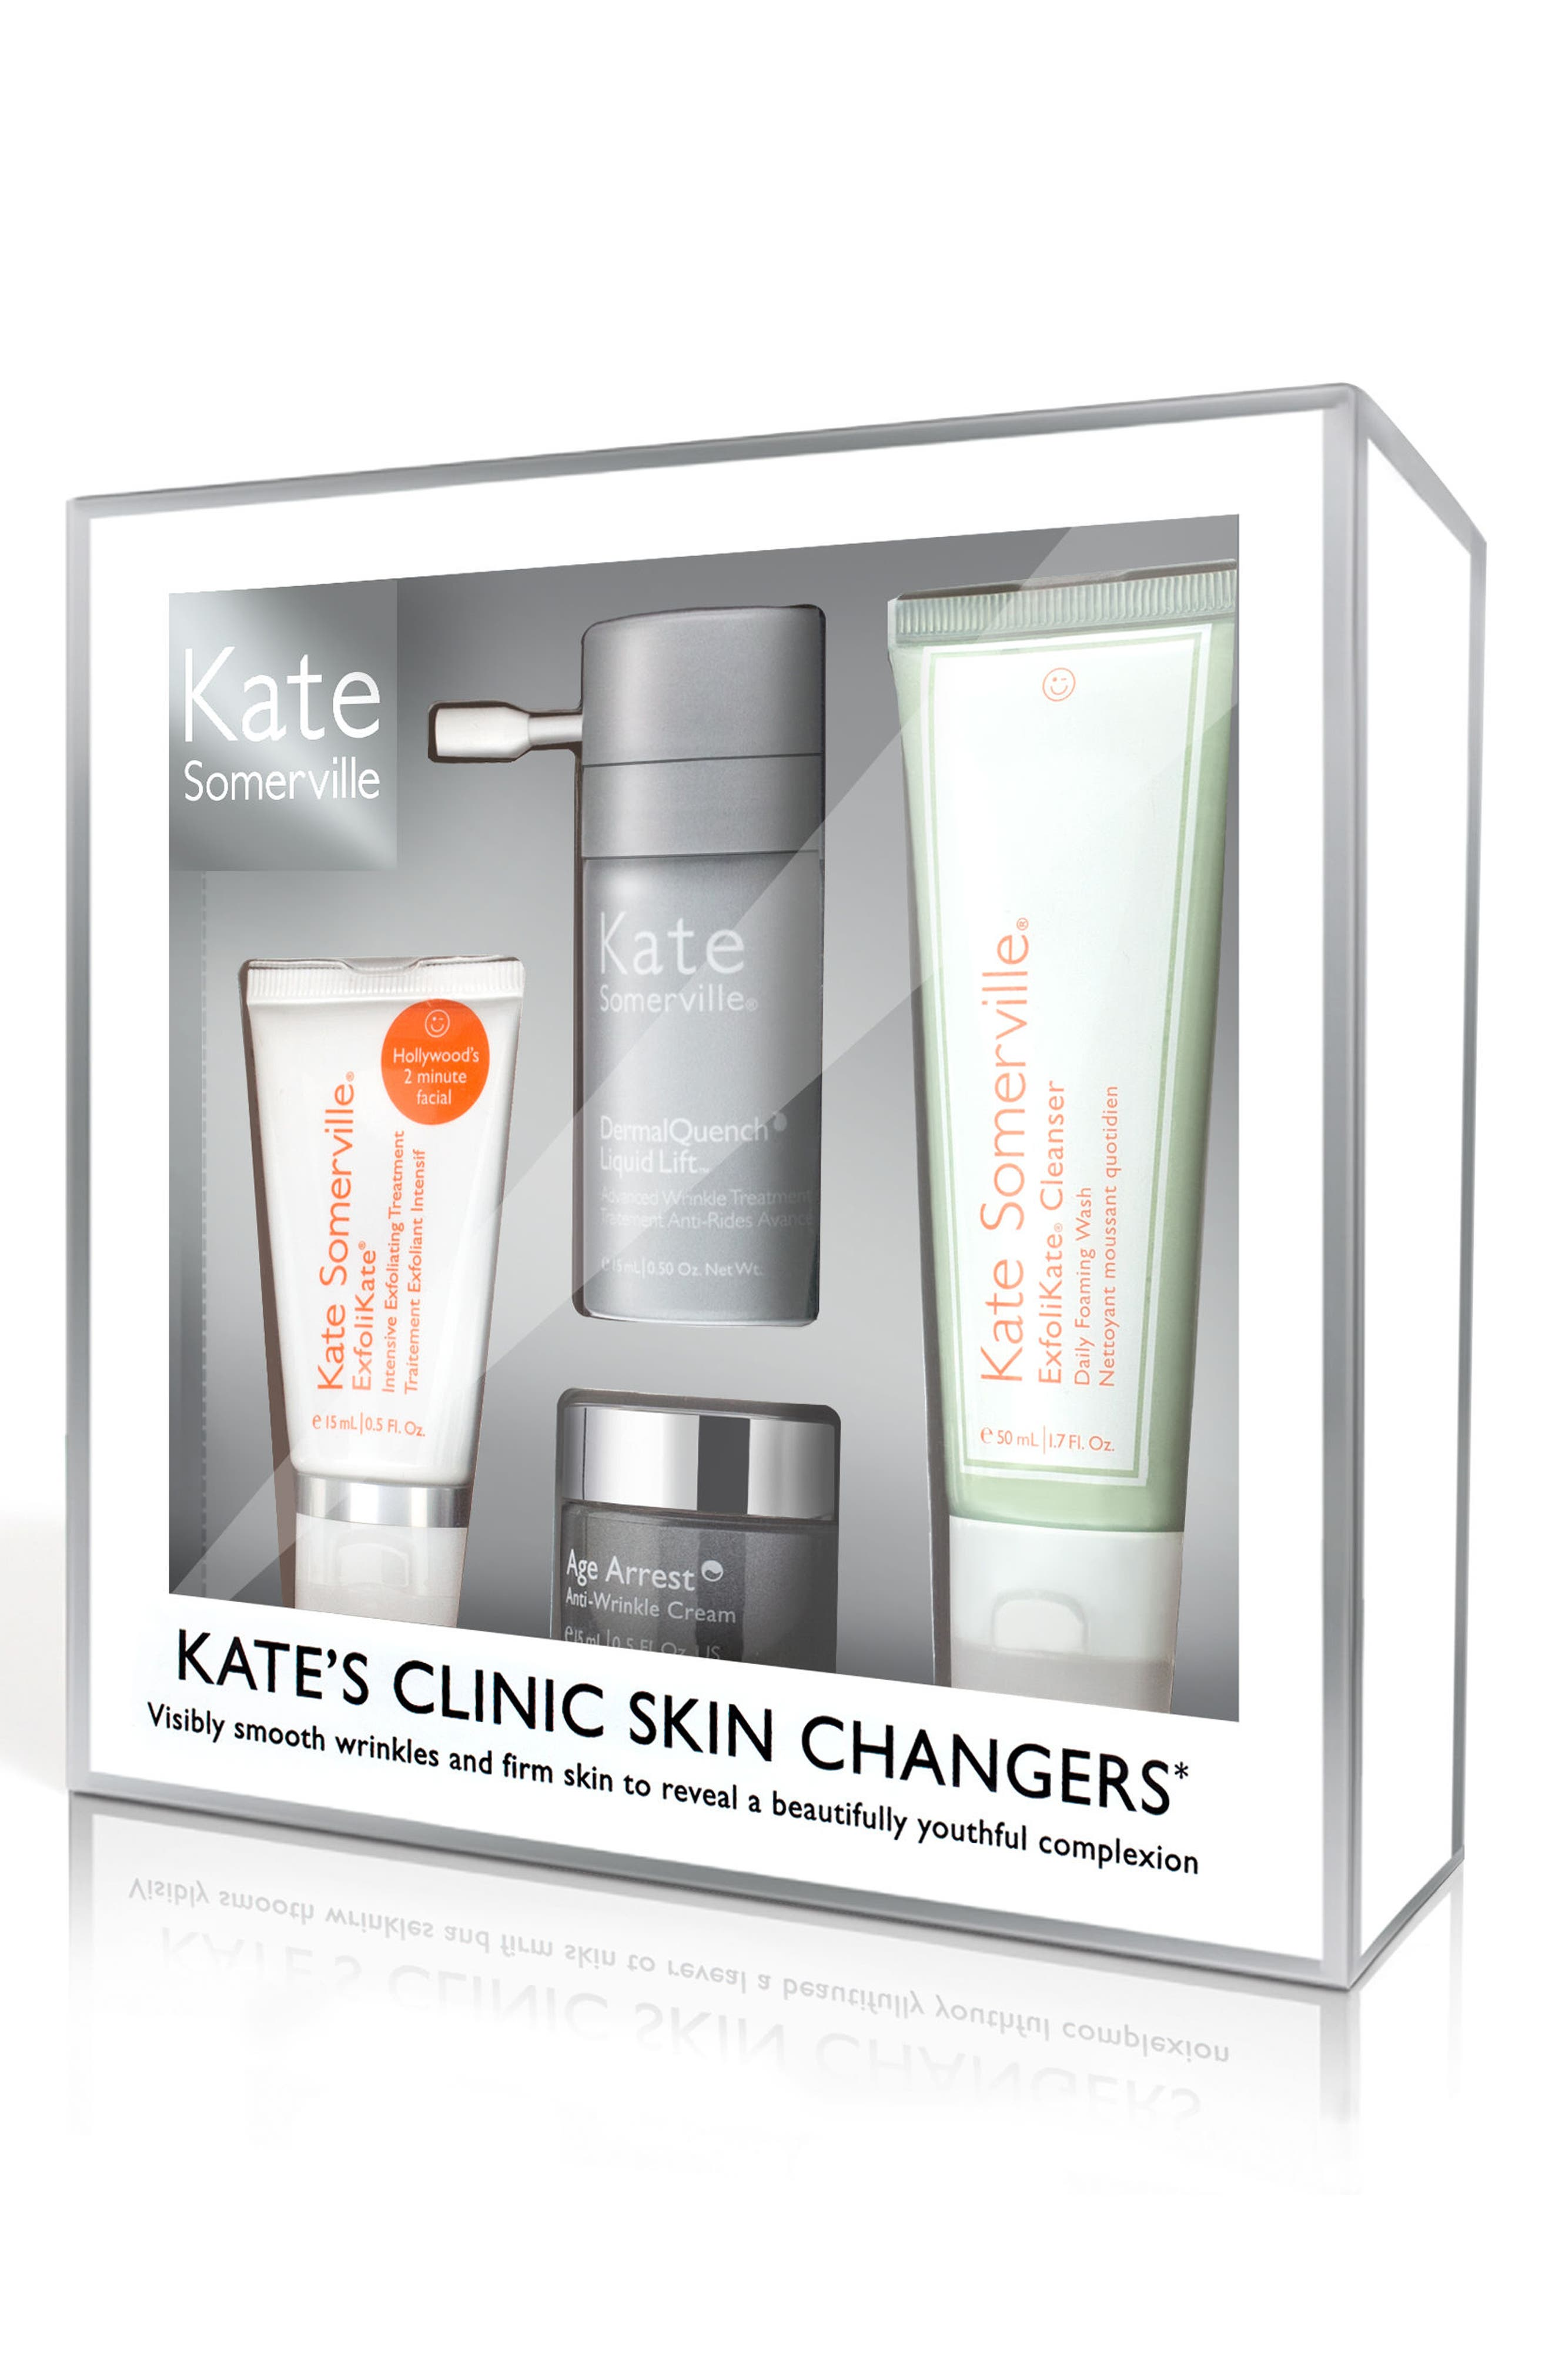 Kate Somerville® Clinic Skin Changers Kit ($93 Value)